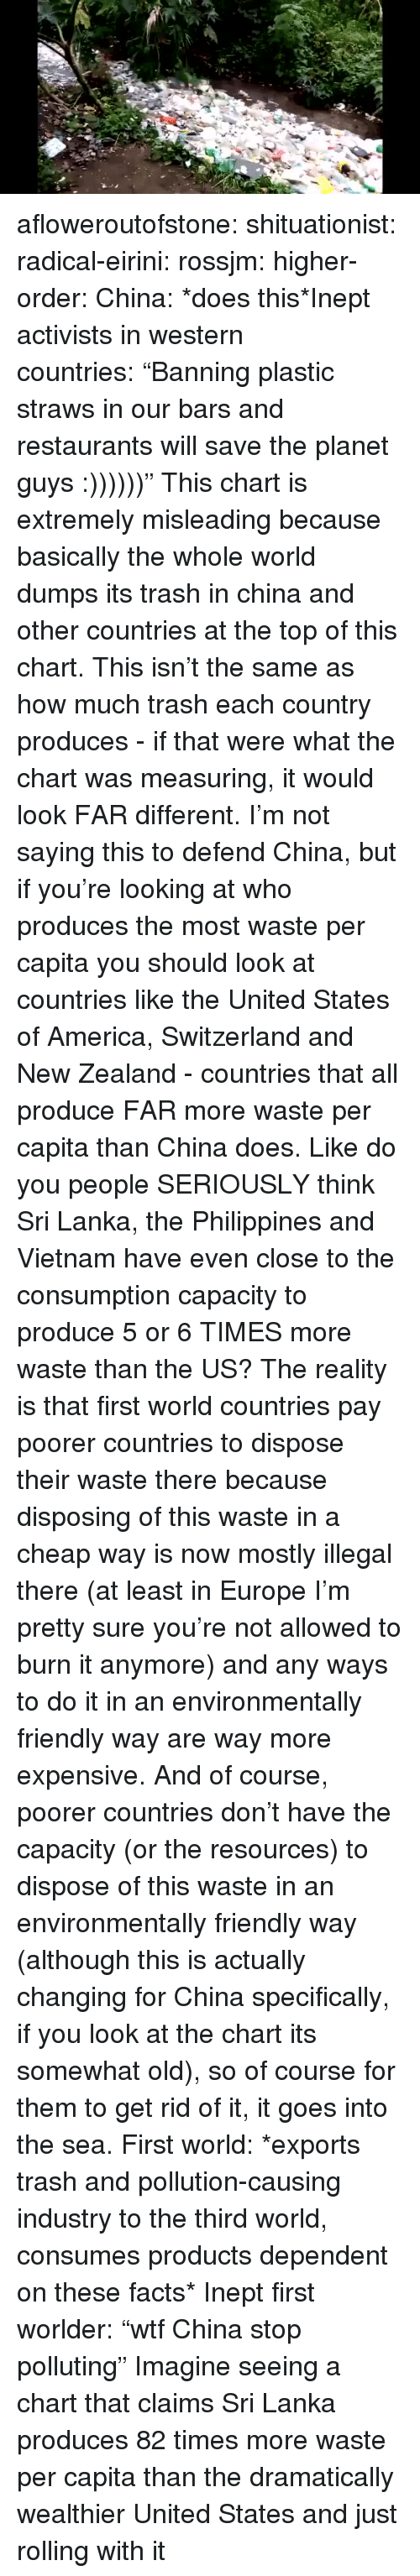 """states of america: afloweroutofstone:  shituationist:  radical-eirini:  rossjm:  higher-order:  China: *does this*Inept activists in western countries:""""Banning plastic straws in our bars and restaurants will save the planet guys :))))))""""  This chart is extremely misleading because basically the whole world dumps its trash in china and other countries at the top of this chart. This isn't the same as how much trash each country produces - if that were what the chart was measuring, it would look FAR different. I'm not saying this to defend China, but if you're looking at who produces the most waste per capita you should look at countries like the United States of America, Switzerland and New Zealand - countries that all produce FAR more waste per capita than China does. Like do you people SERIOUSLY think Sri Lanka, the Philippines and Vietnam have even close to the consumption capacity to produce 5 or 6 TIMES more waste than the US? The reality is that first world countries pay poorer countries to dispose their waste there because disposing of this waste in a cheap way is now mostly illegal there (at least in Europe I'm pretty sure you're not allowed to burn it anymore) and any ways to do it in an environmentally friendly way are way more expensive. And of course, poorer countries don't have the capacity (or the resources) to dispose of this waste in an environmentally friendly way (although this is actually changing for China specifically, if you look at the chart its somewhat old), so of course for them to get rid of it, it goes into the sea.  First world: *exports trash and pollution-causing industry to the third world, consumes products dependent on these facts* Inept first worlder: """"wtf China stop polluting""""  Imagine seeing a chart that claims Sri Lanka produces 82 times more waste per capita than the dramatically wealthier United States and just rolling with it"""